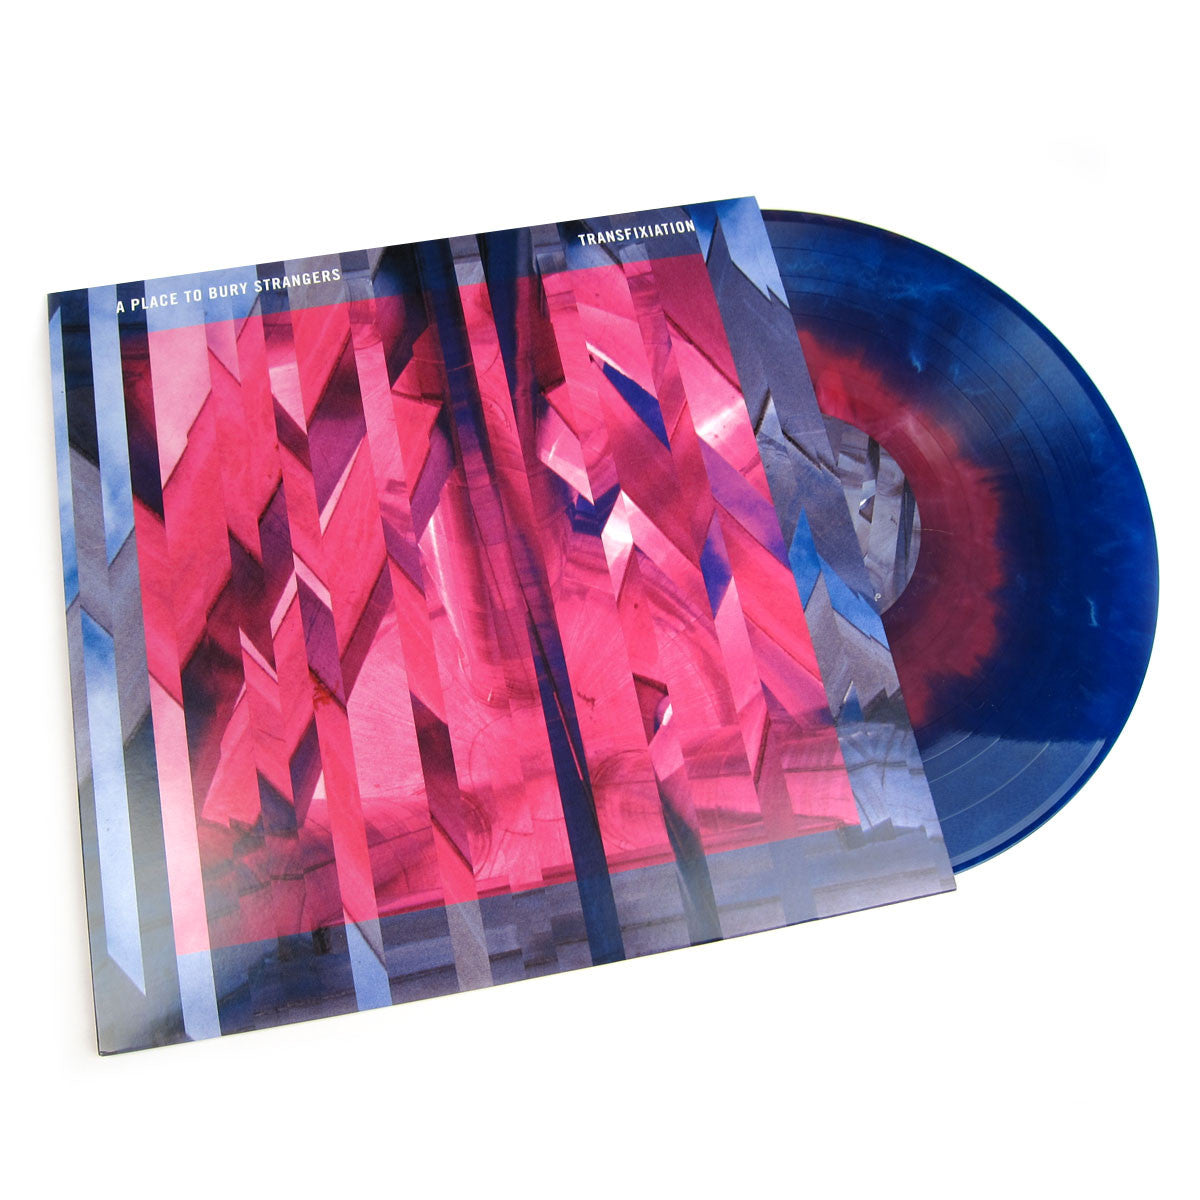 A Place To Bury Strangers: Transfixiation (Colored Vinyl) Vinyl LP